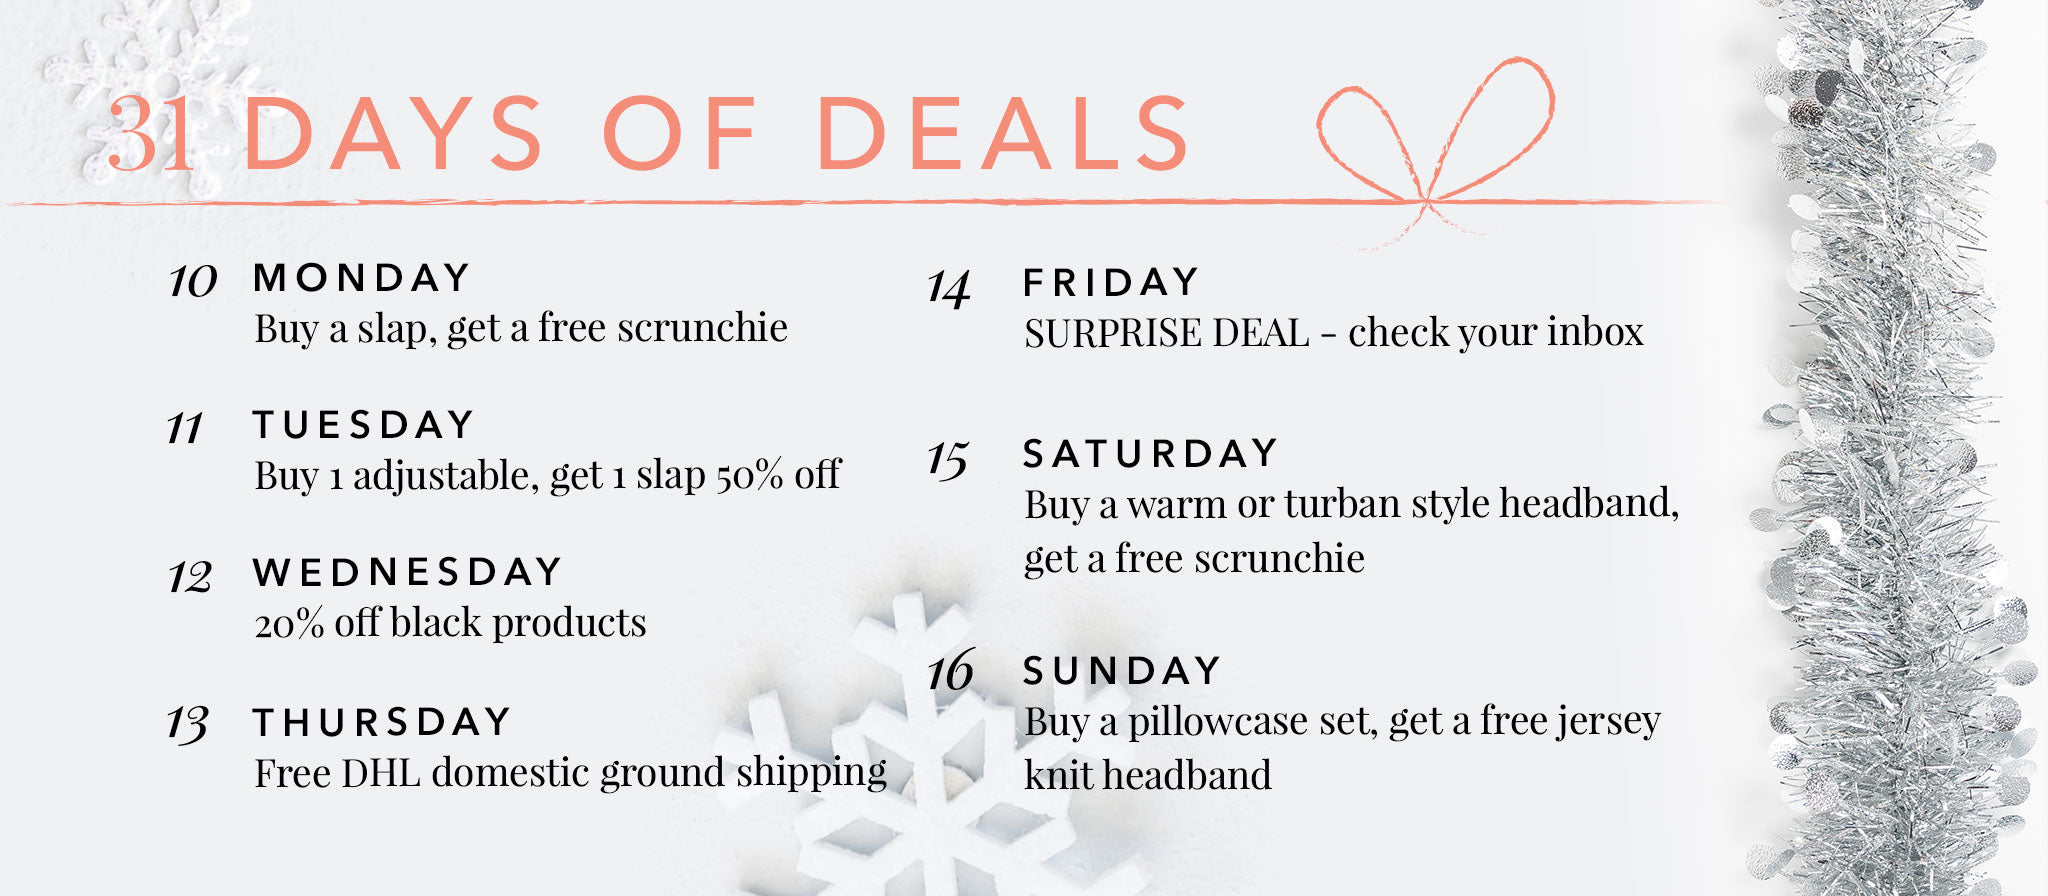 31 Days of Deals Grace Eleyae